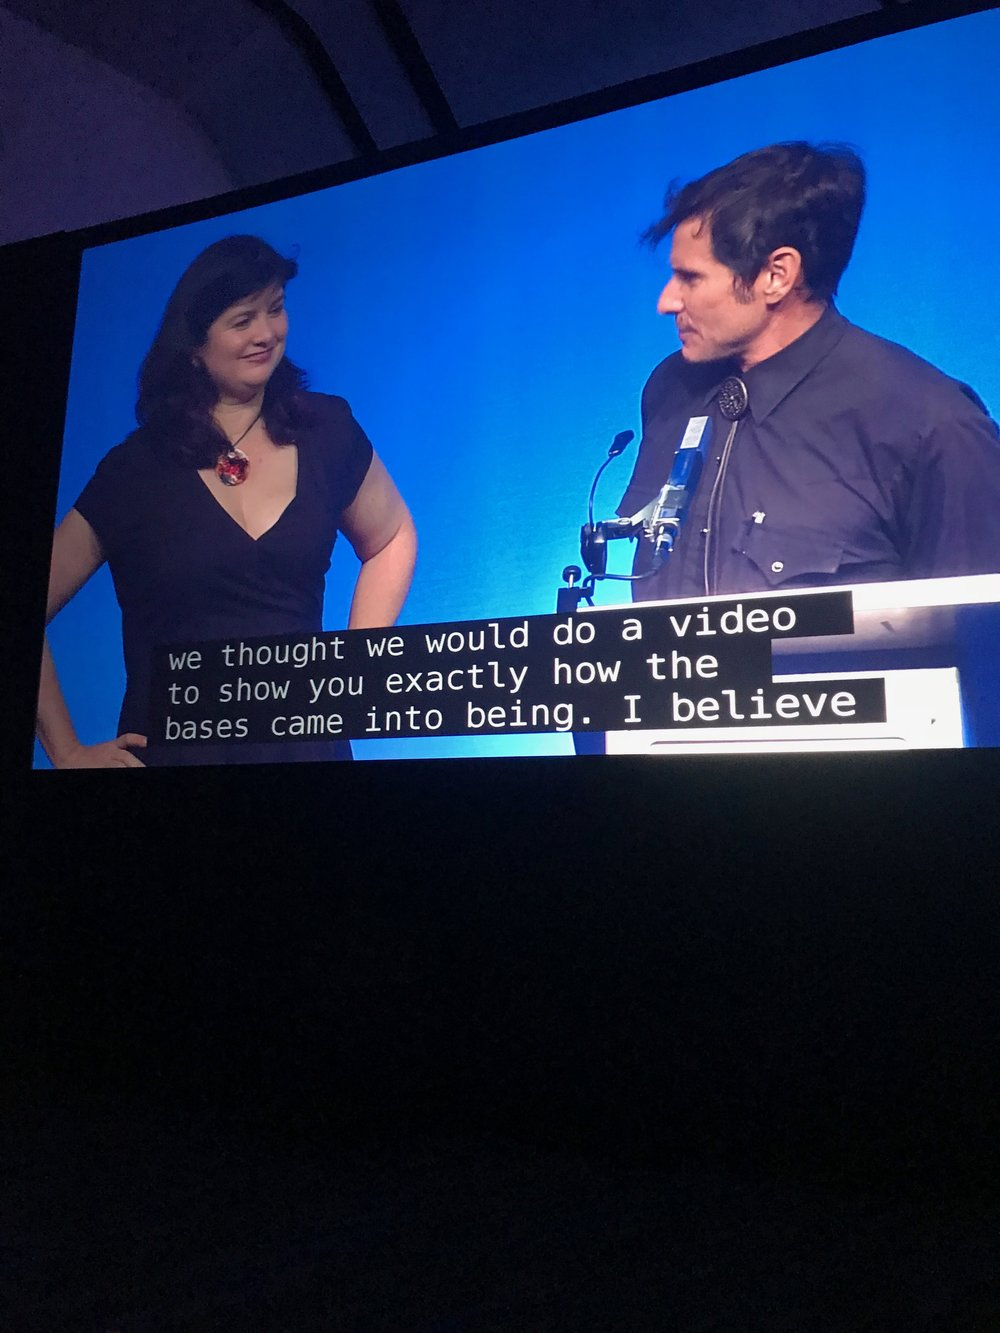 Sara Felix and Vincent Villafranca talk about their experience designing the Hugo Award base at the Hugo Award Ceremony during Worldcon 76